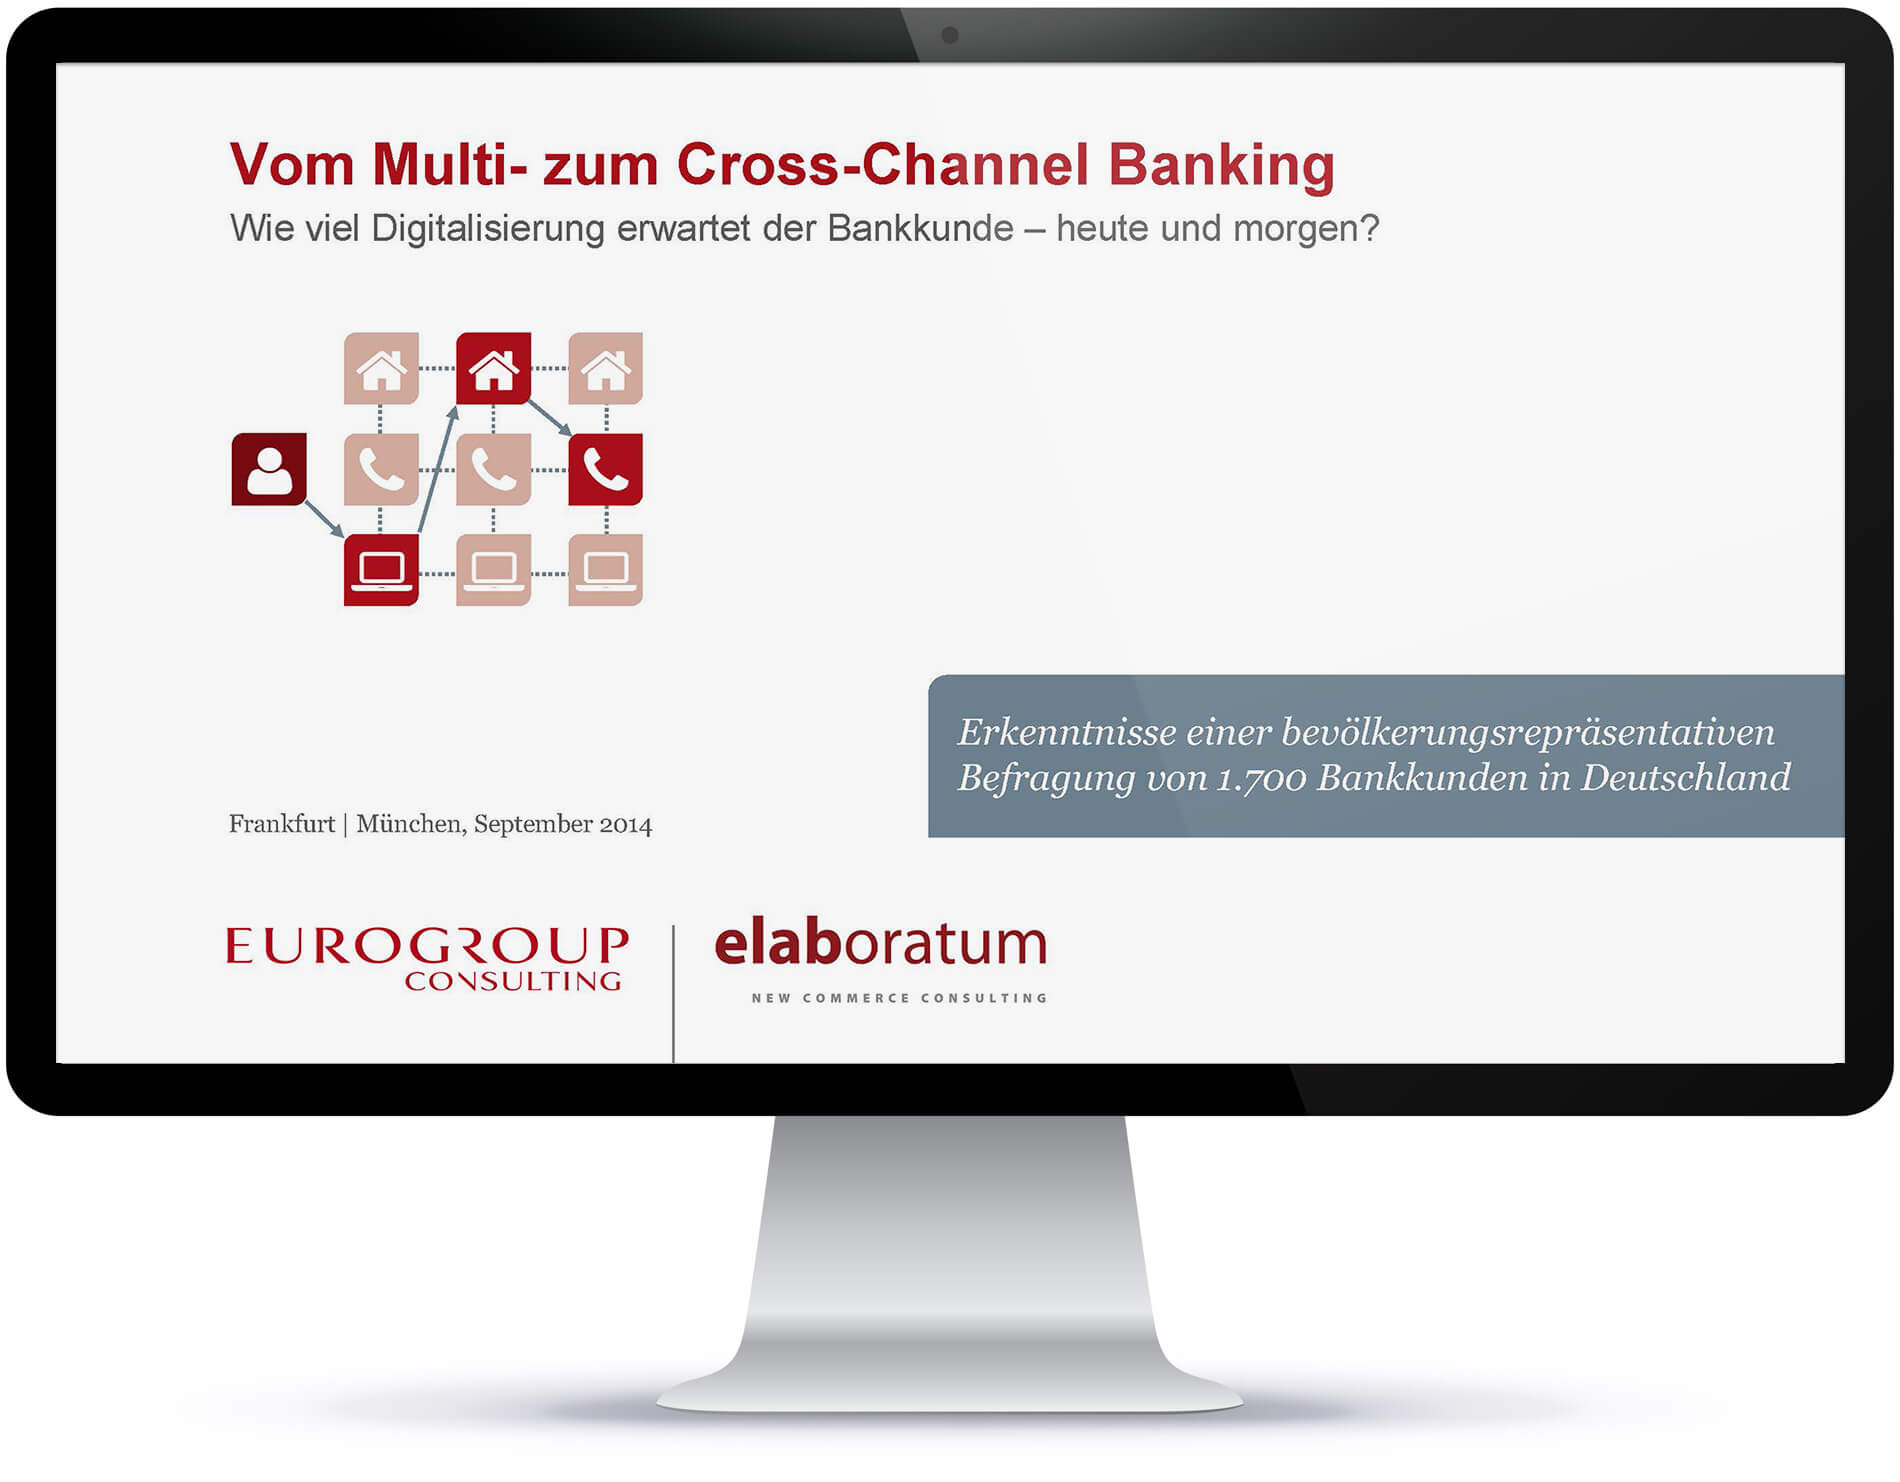 Kernstudie: Vom Multi- zum Cross-Channel-Banking